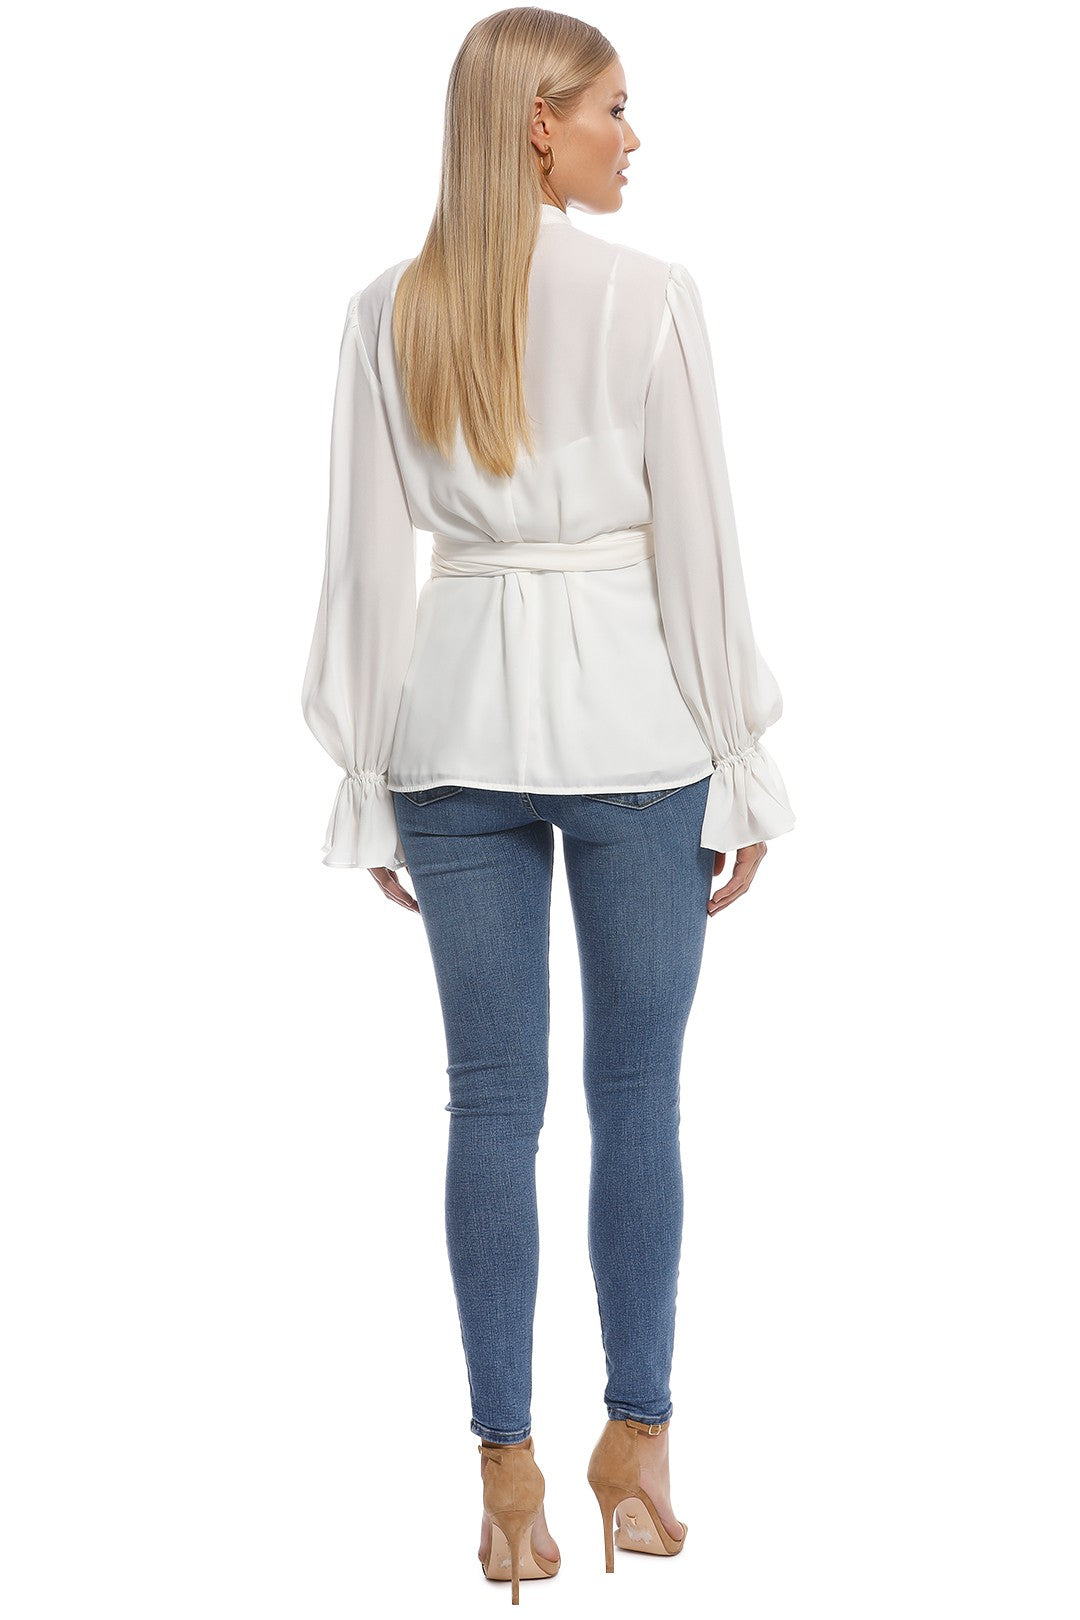 Keepsake Imagine Long Sleeve Top in Ivory